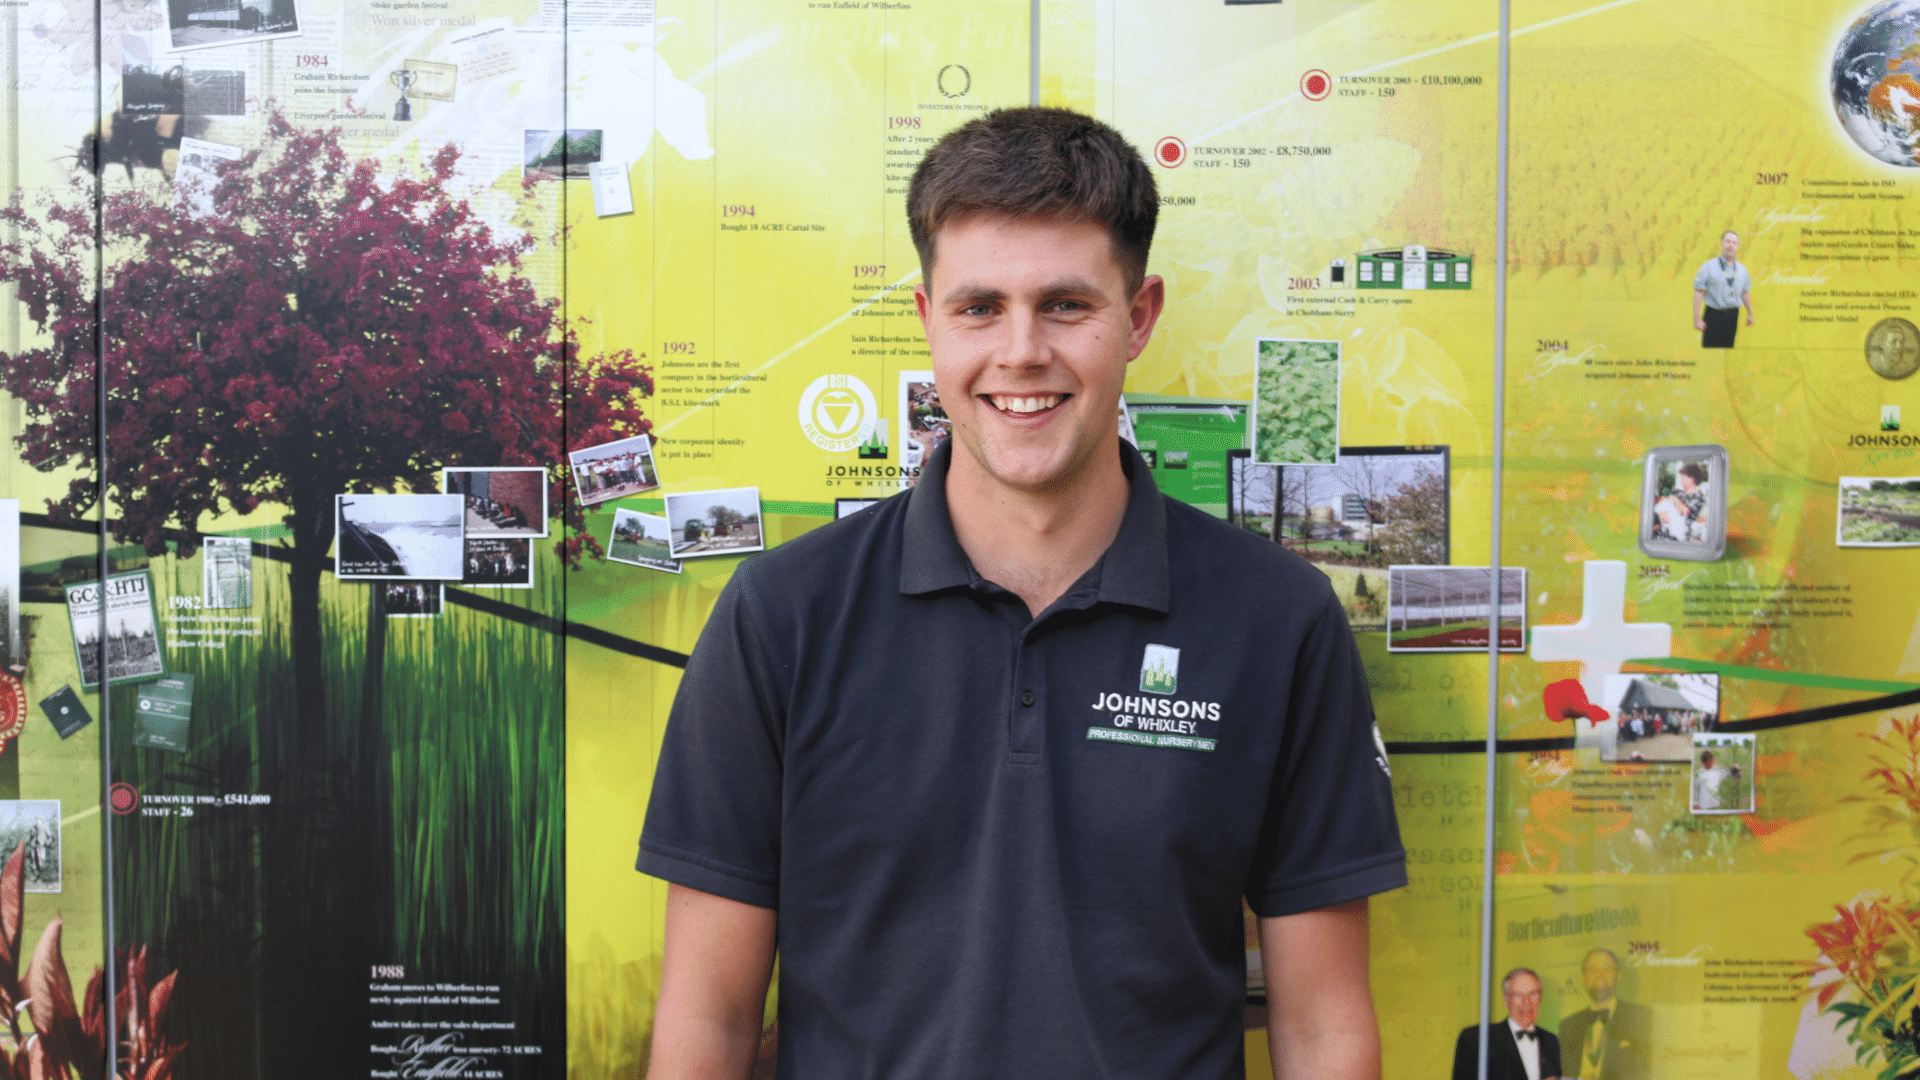 A new role for Jack Witham